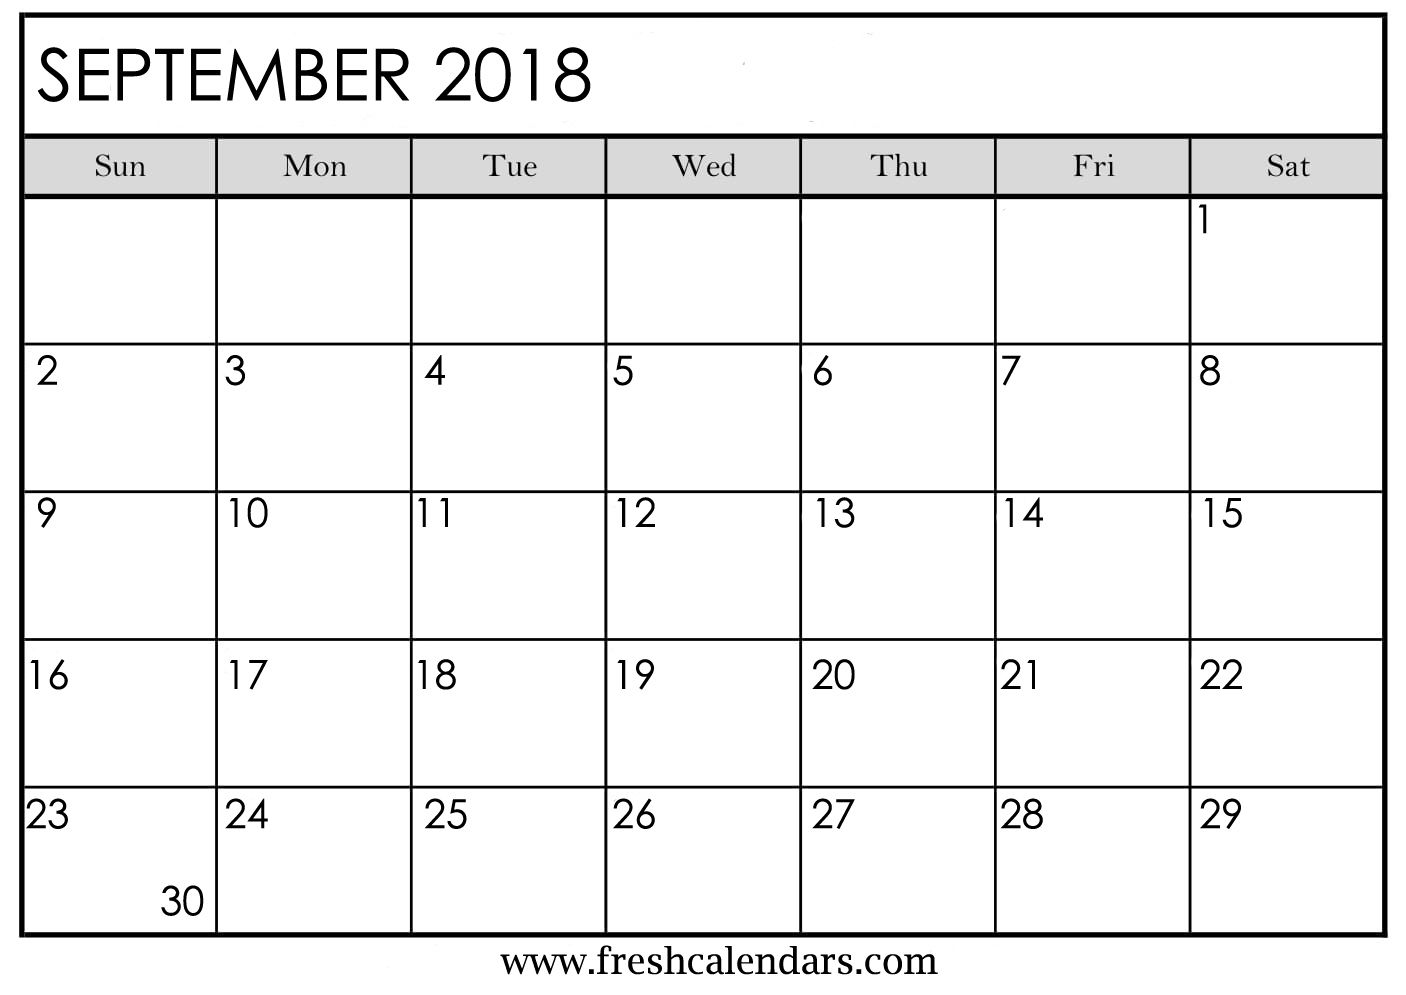 graphic regarding September Printable Calendar identify September 2018 Calendar Printable - Fresh new Calendars